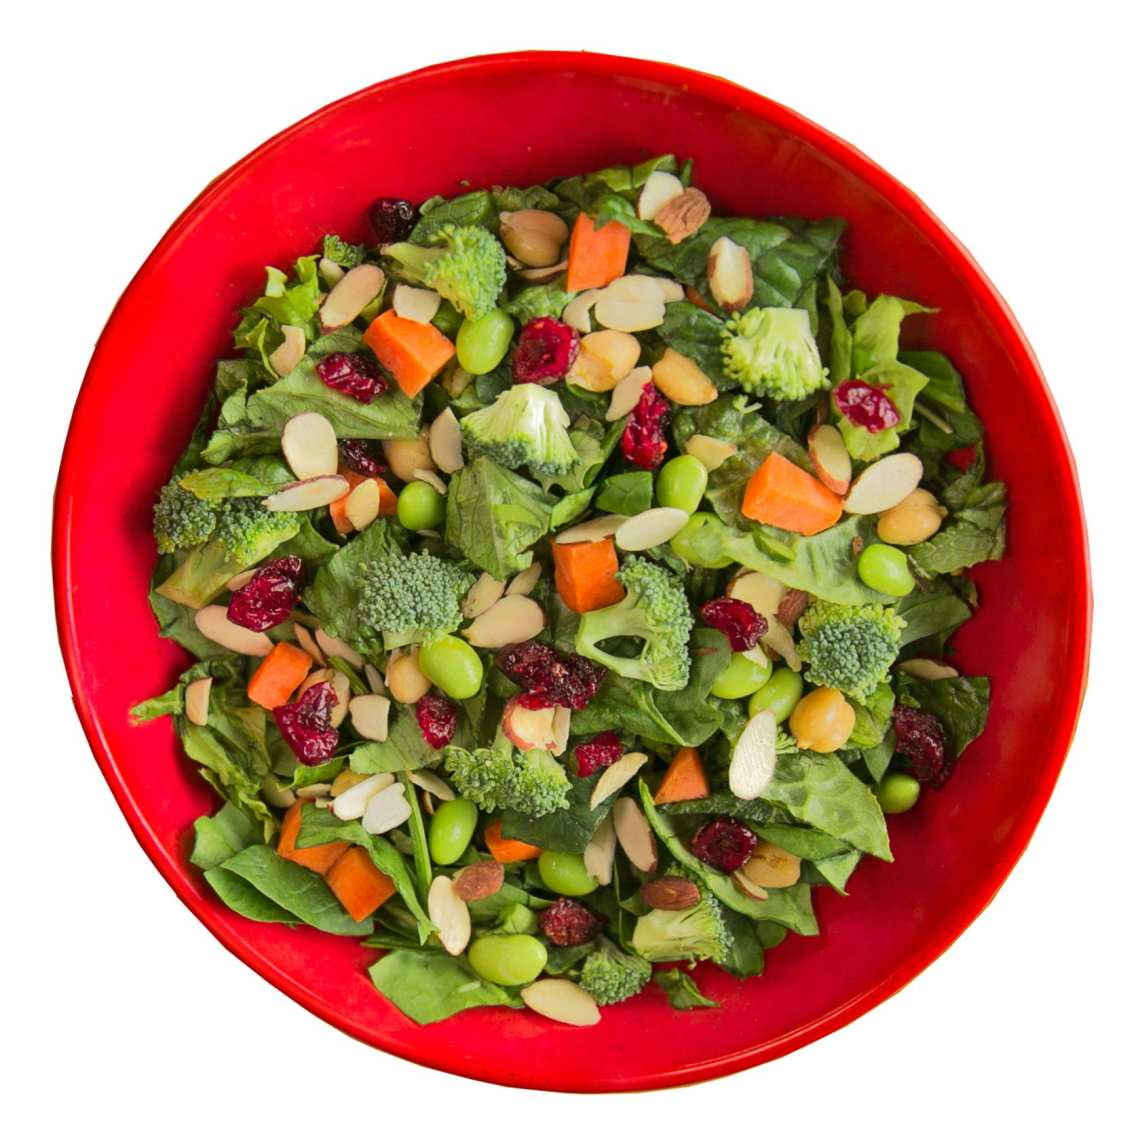 Crushed Red Health Nut Urban Crafted Salad